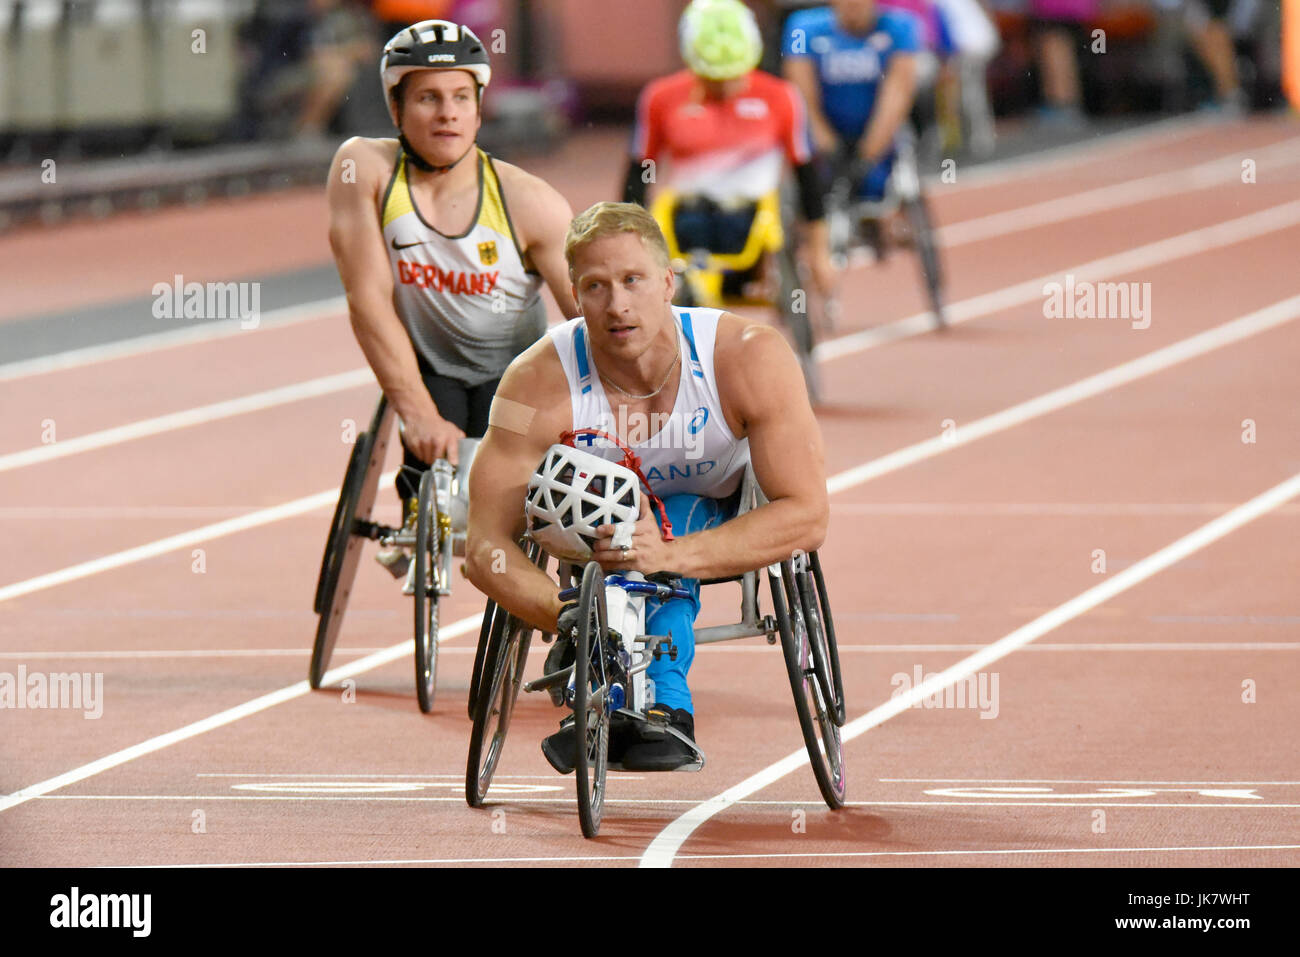 leo-pekka-tahti-competing-at-the-world-para-athletics-championships-JK7WHT.jpg